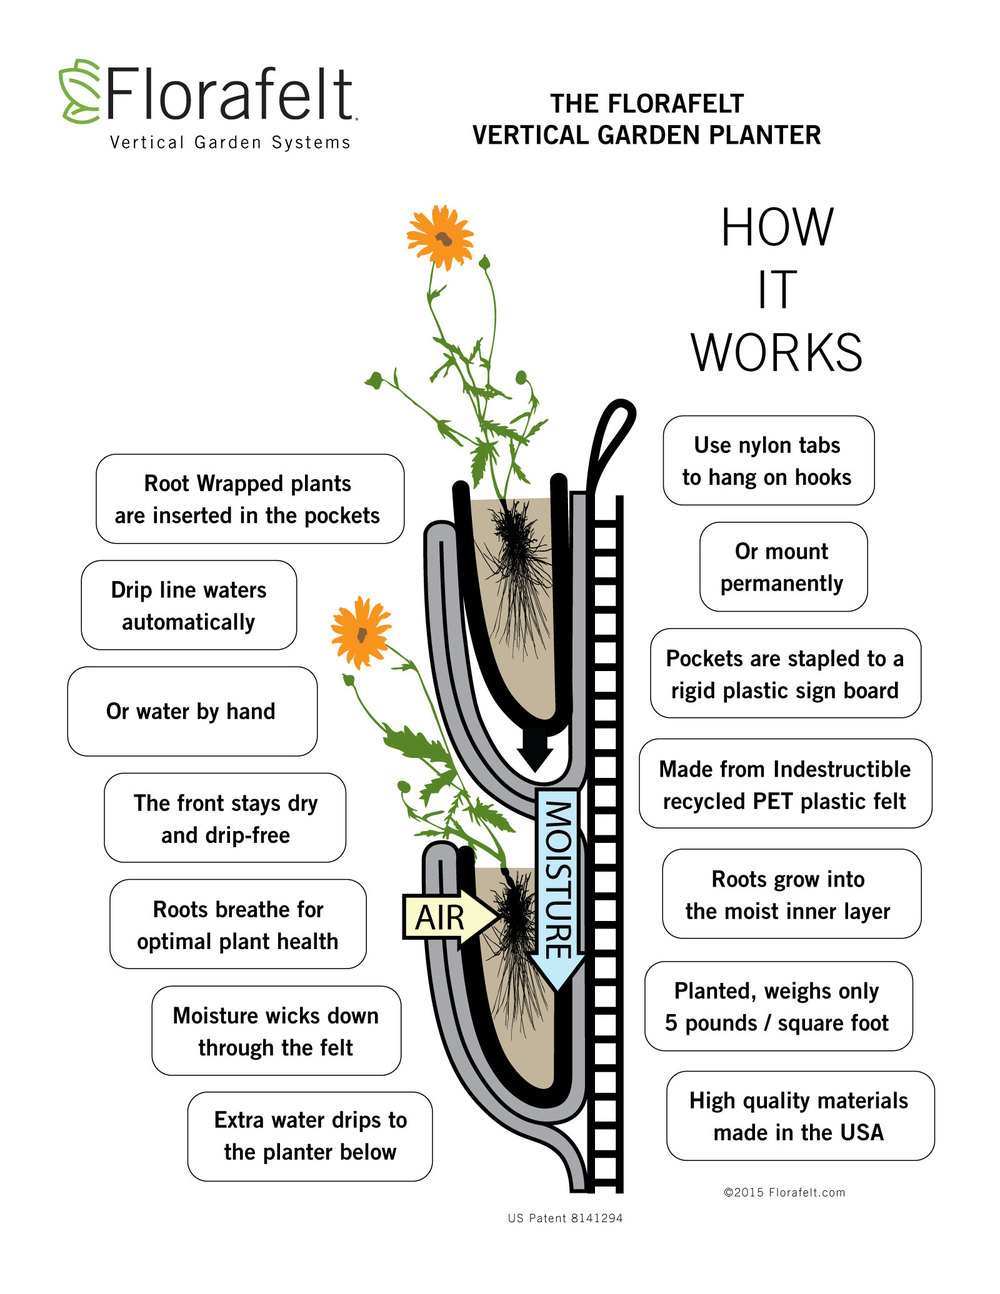 Florafelt Vertical Garden Planters How It Works